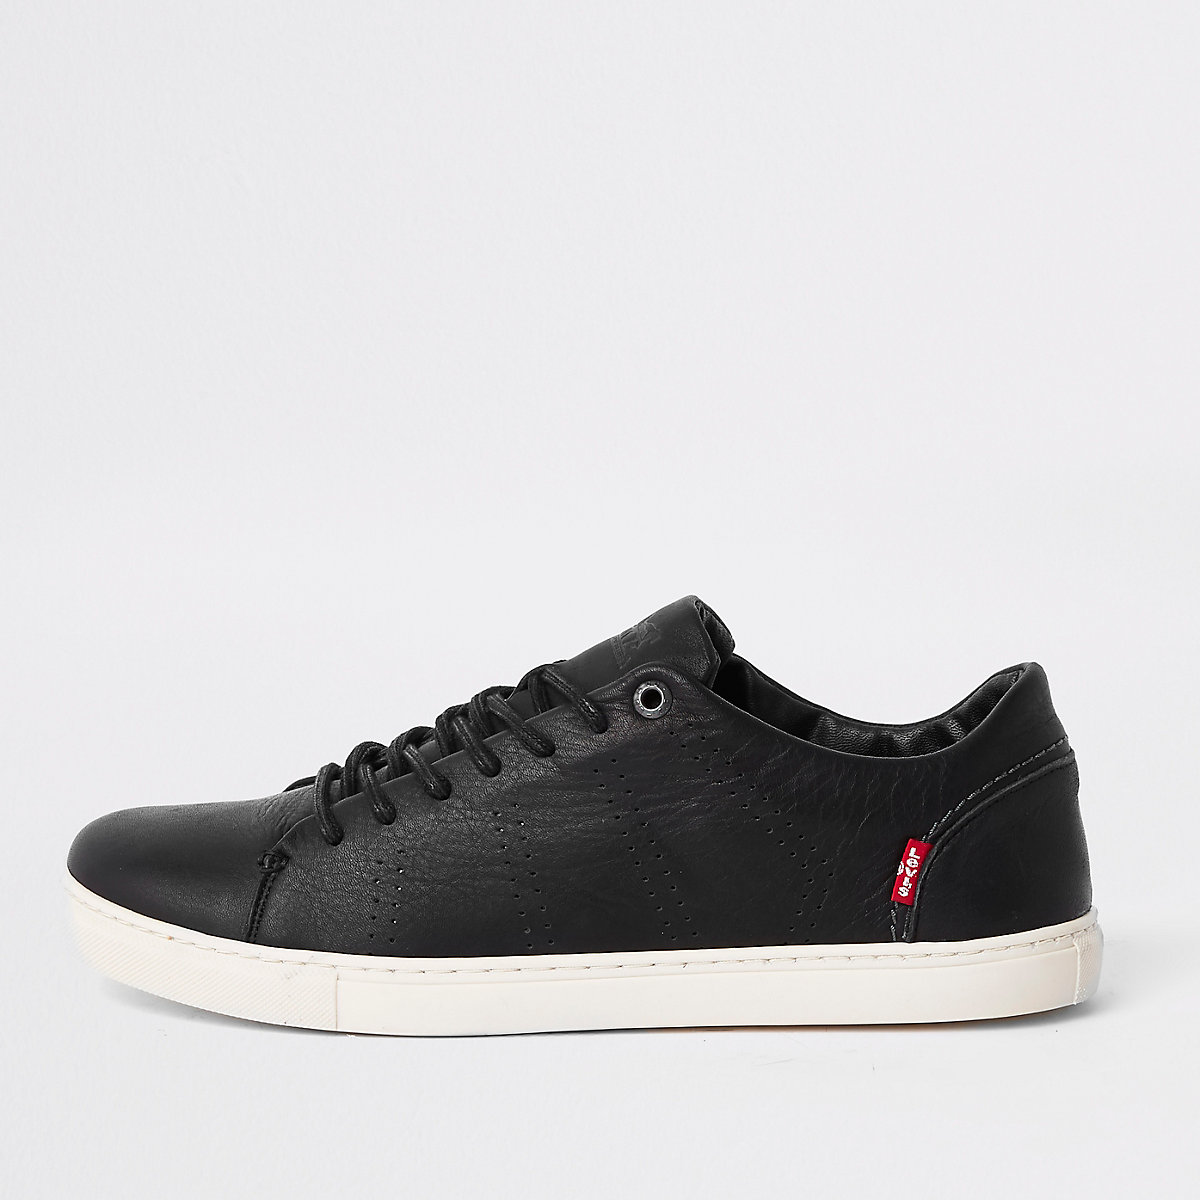 Levi's black leather lace-up trainers